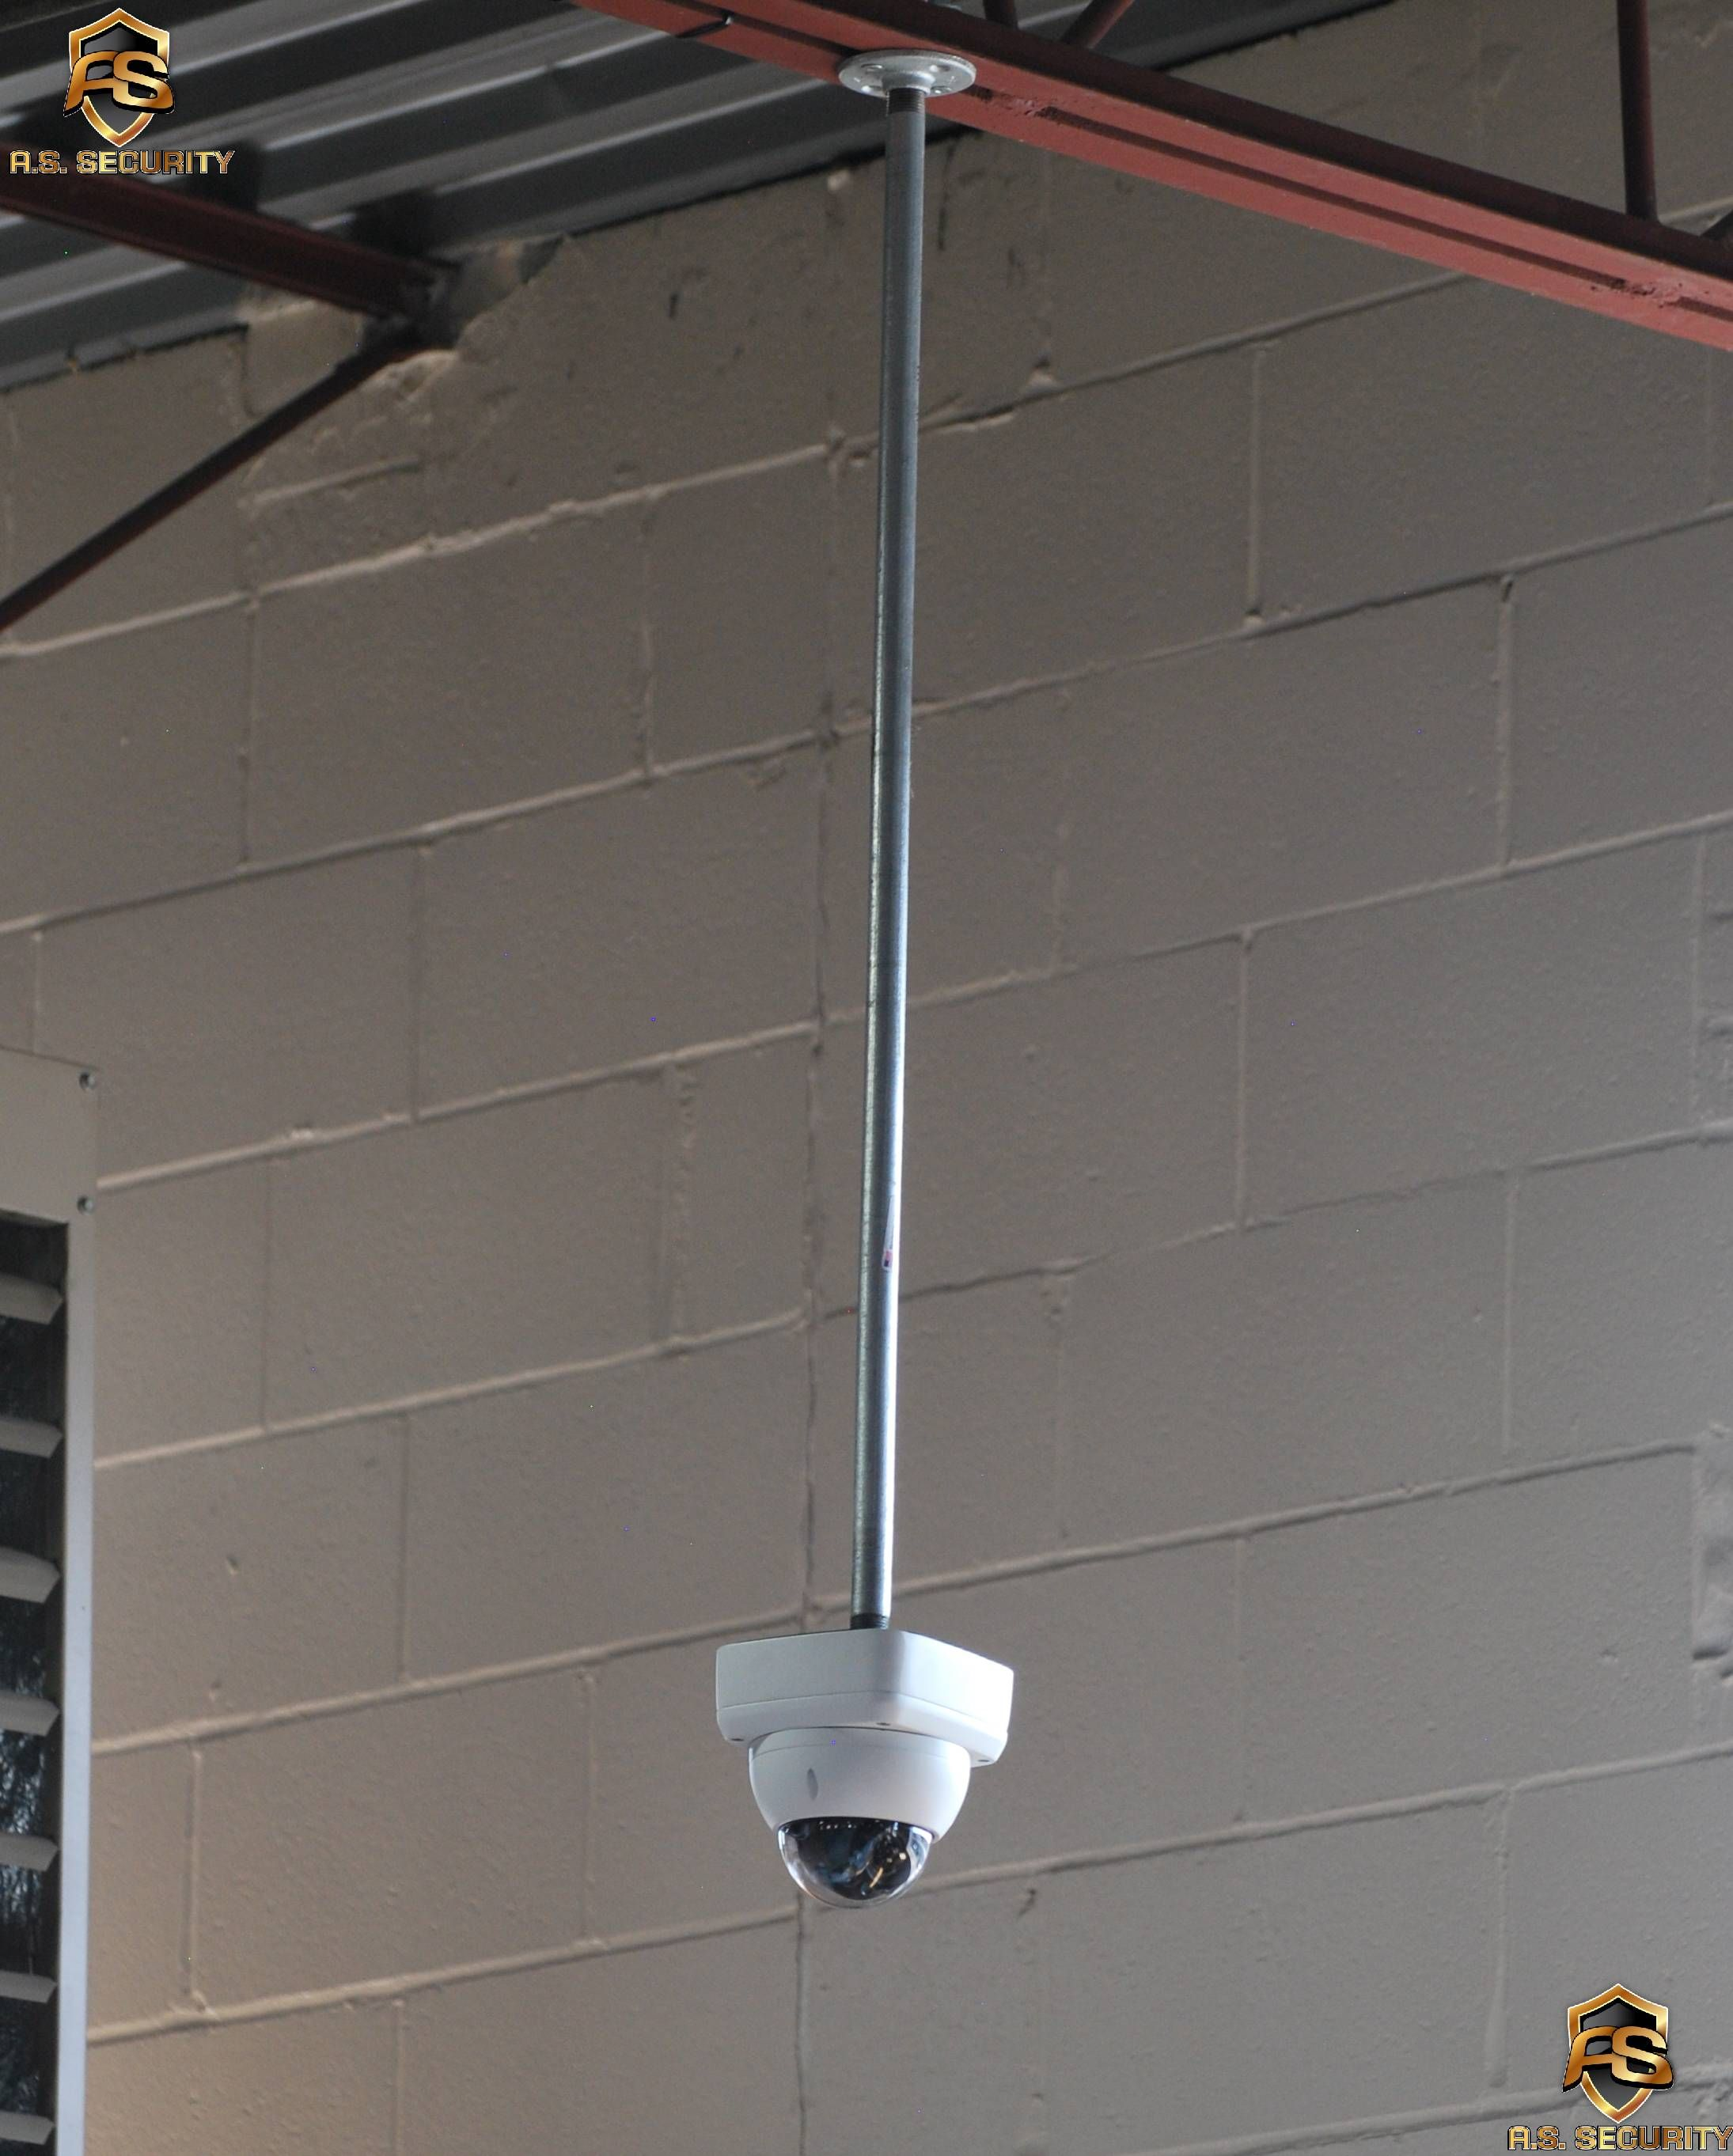 Pvc and emt conduit installation by as security